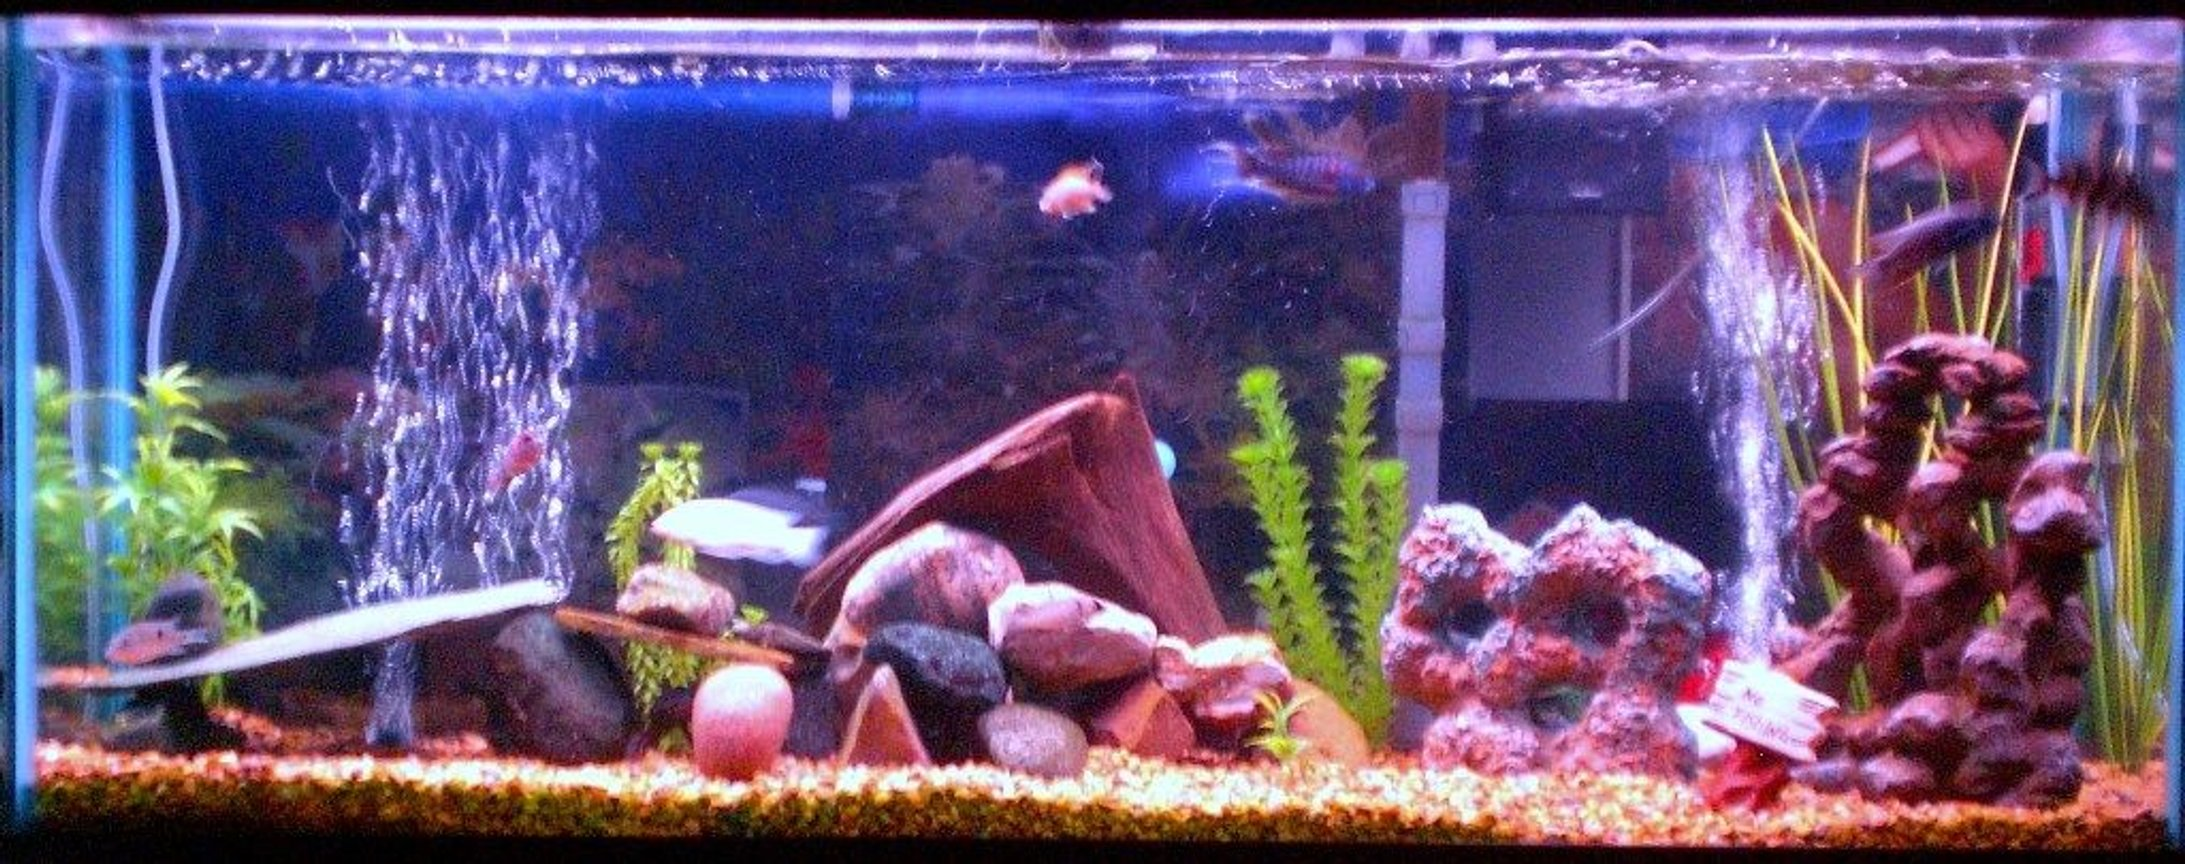 55 gallons freshwater fish tank (mostly fish and non-living decorations) - 55 gallon Freshwater Tank. Assorted African Cichlids.